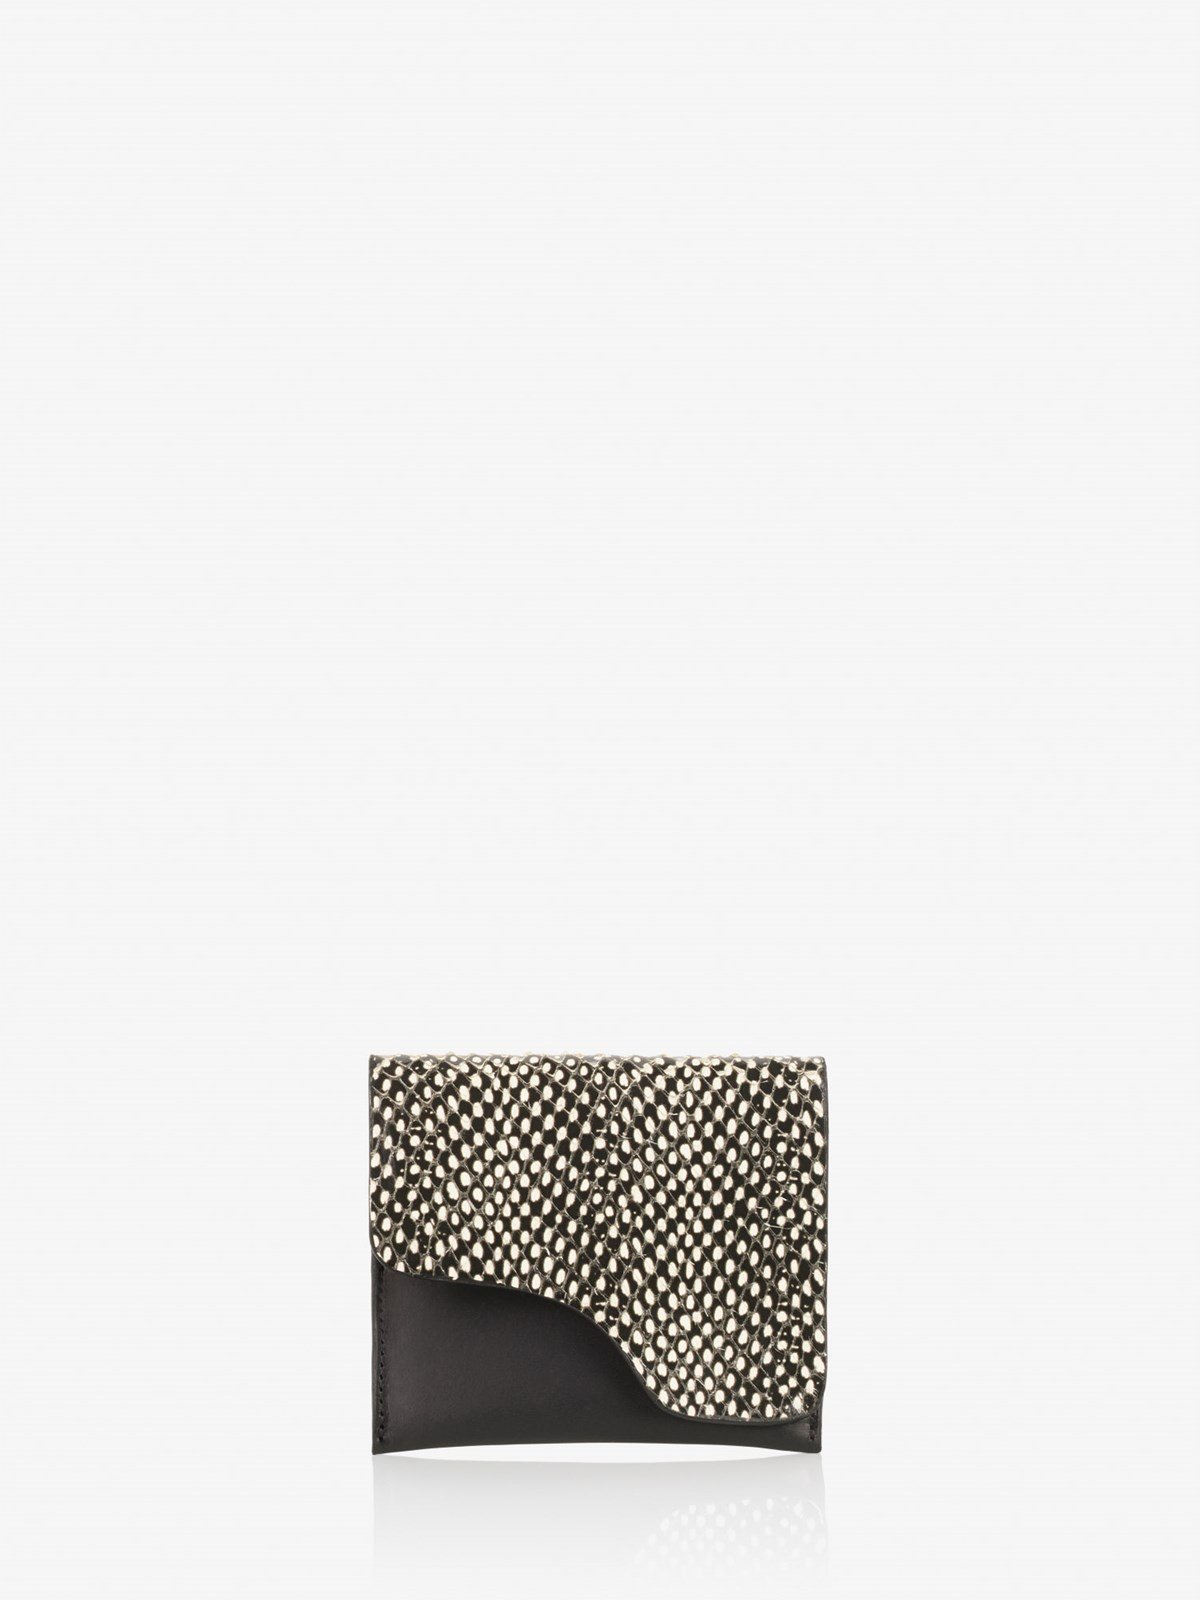 Olba Black White Dot Wallet